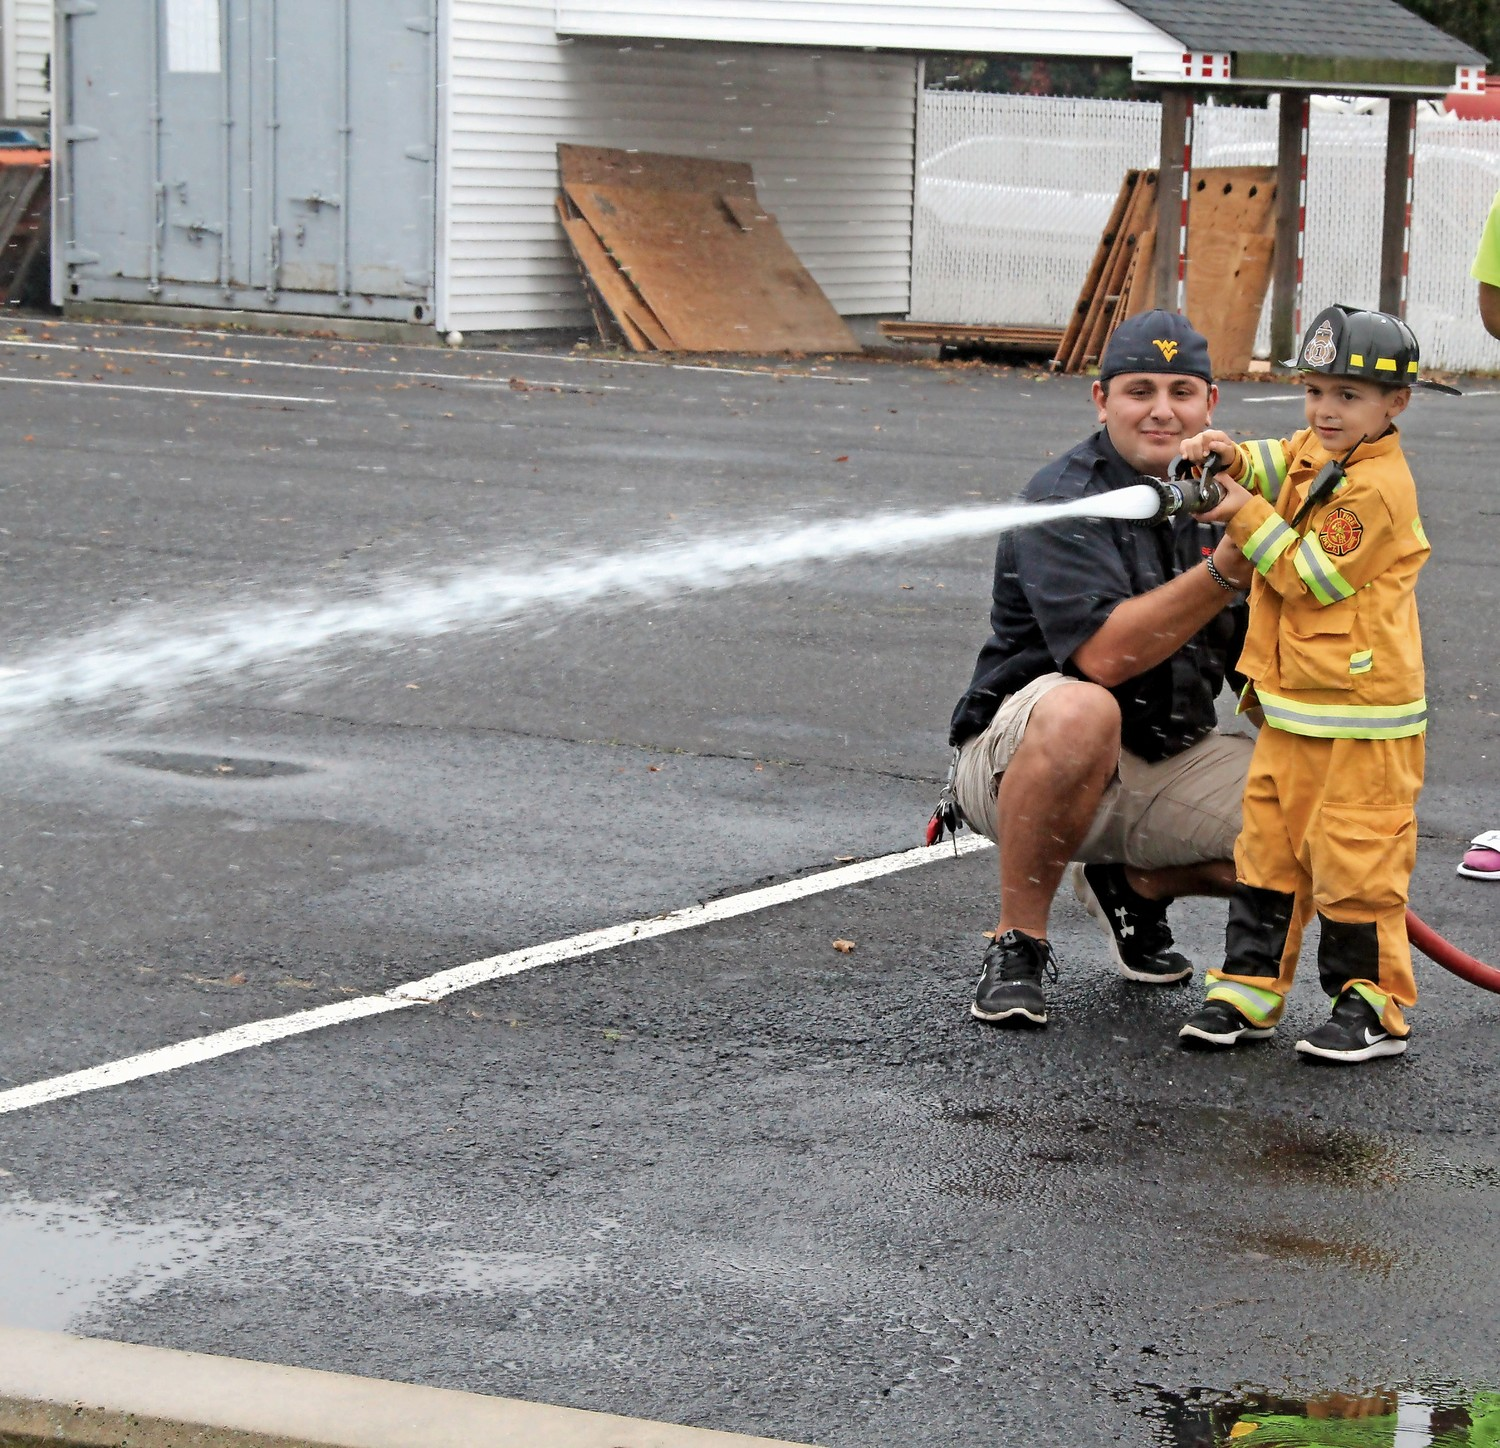 Ryan Kind, 5, gets instructions from Seaford Firefighter Joe Bongiovi on how to direct a hose line.